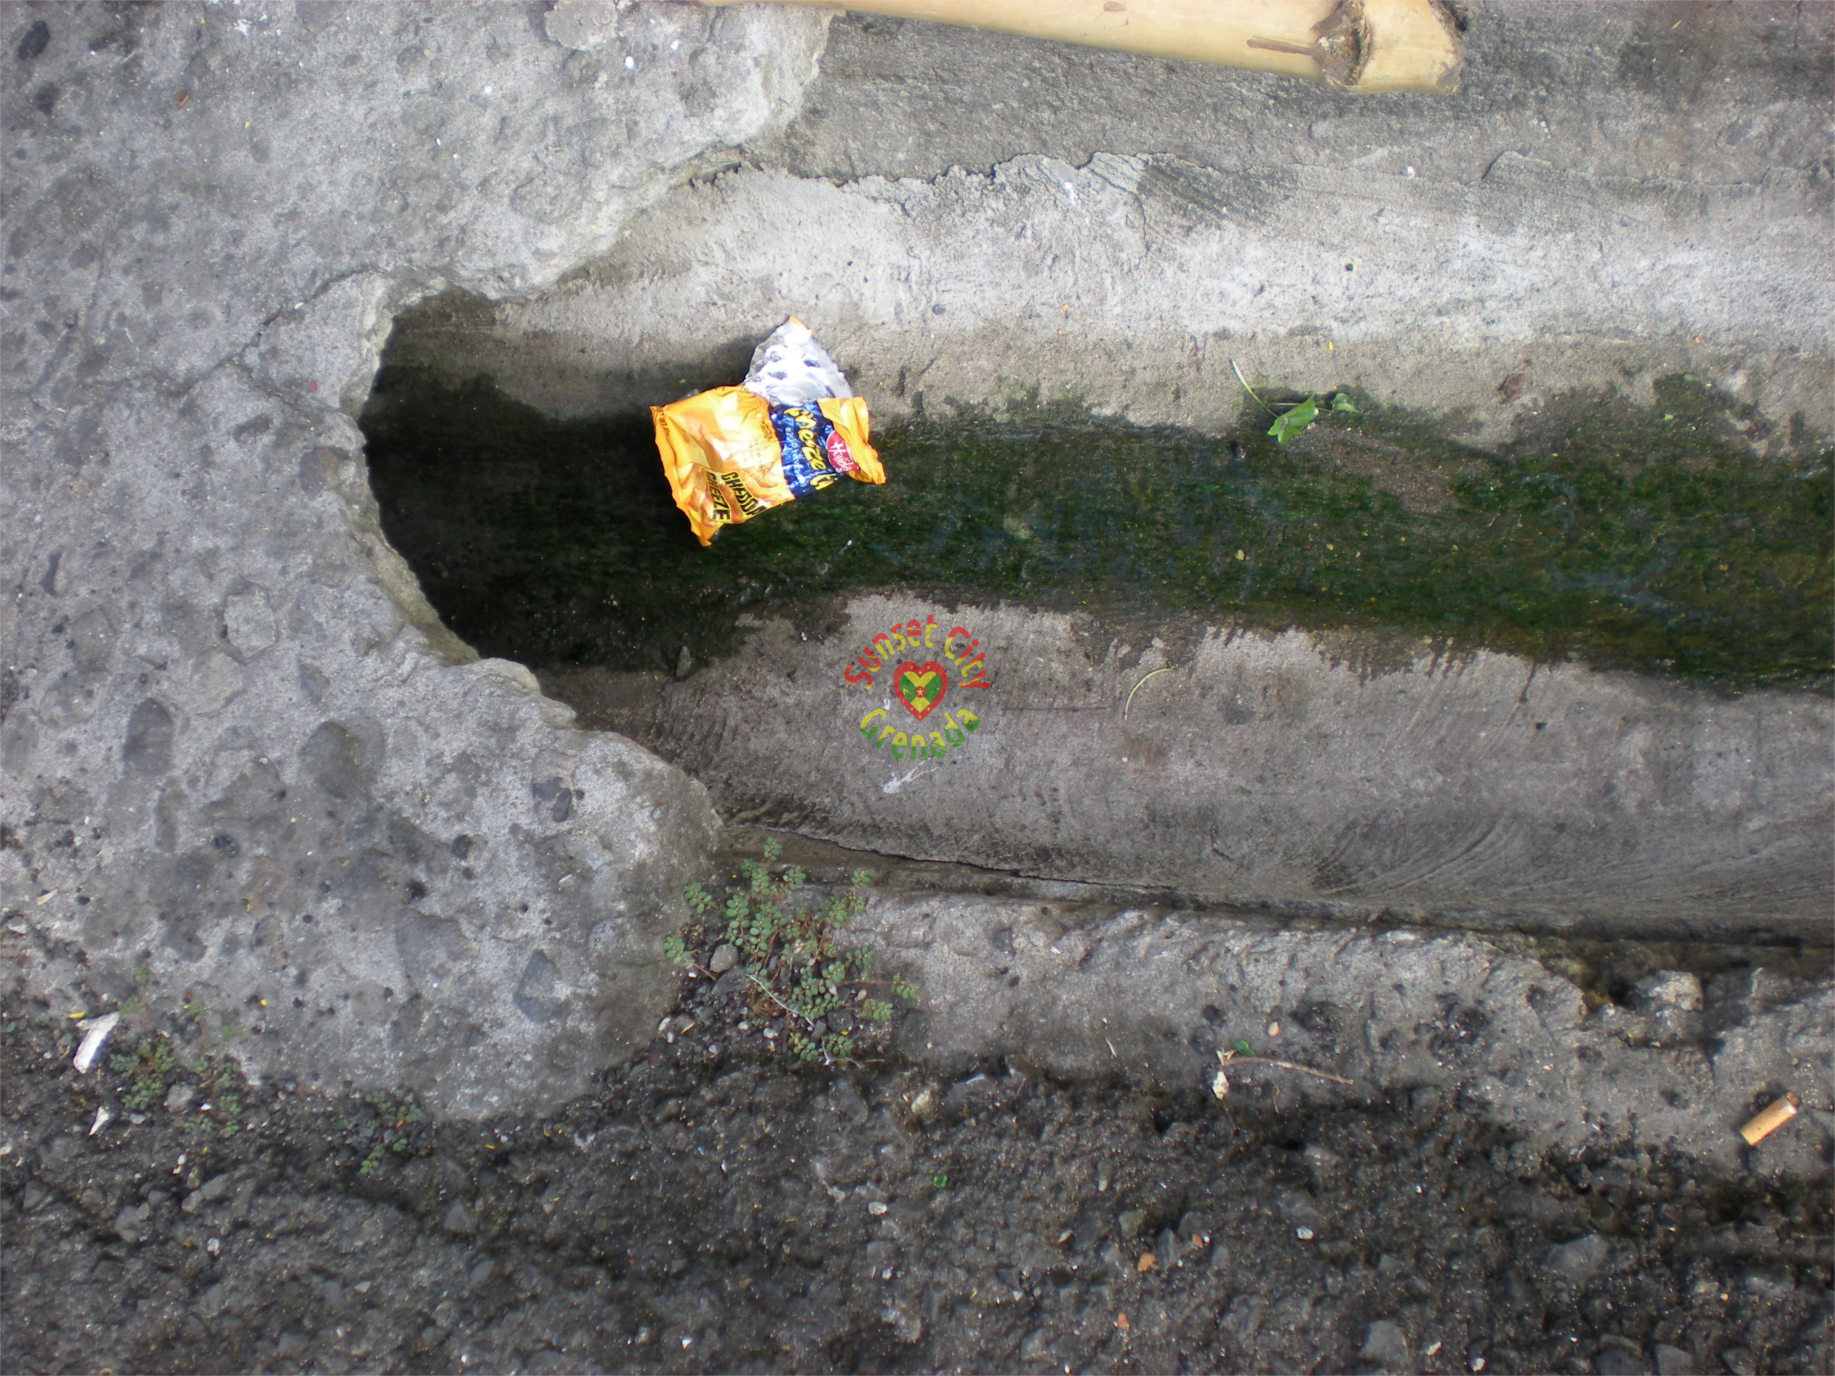 Wrapper from snack dumped in drain on Diamond Street